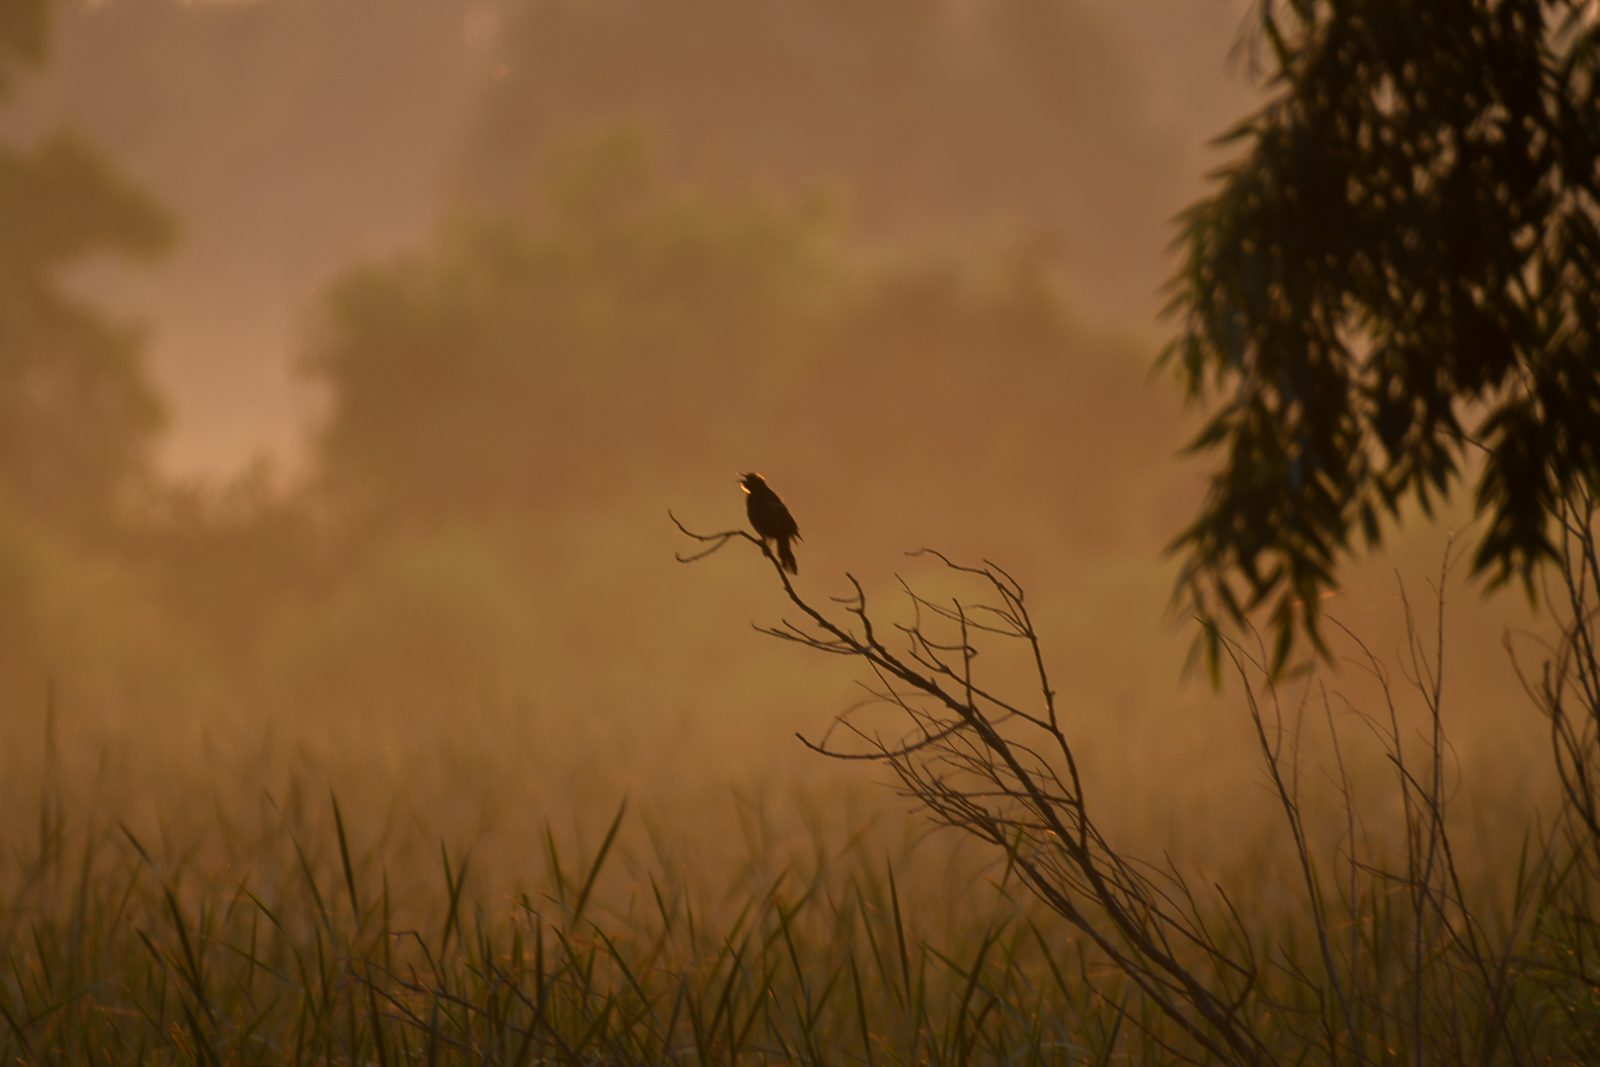 Red-Winged Blackbird Sings in a Misty Summer Morning at Sunrise